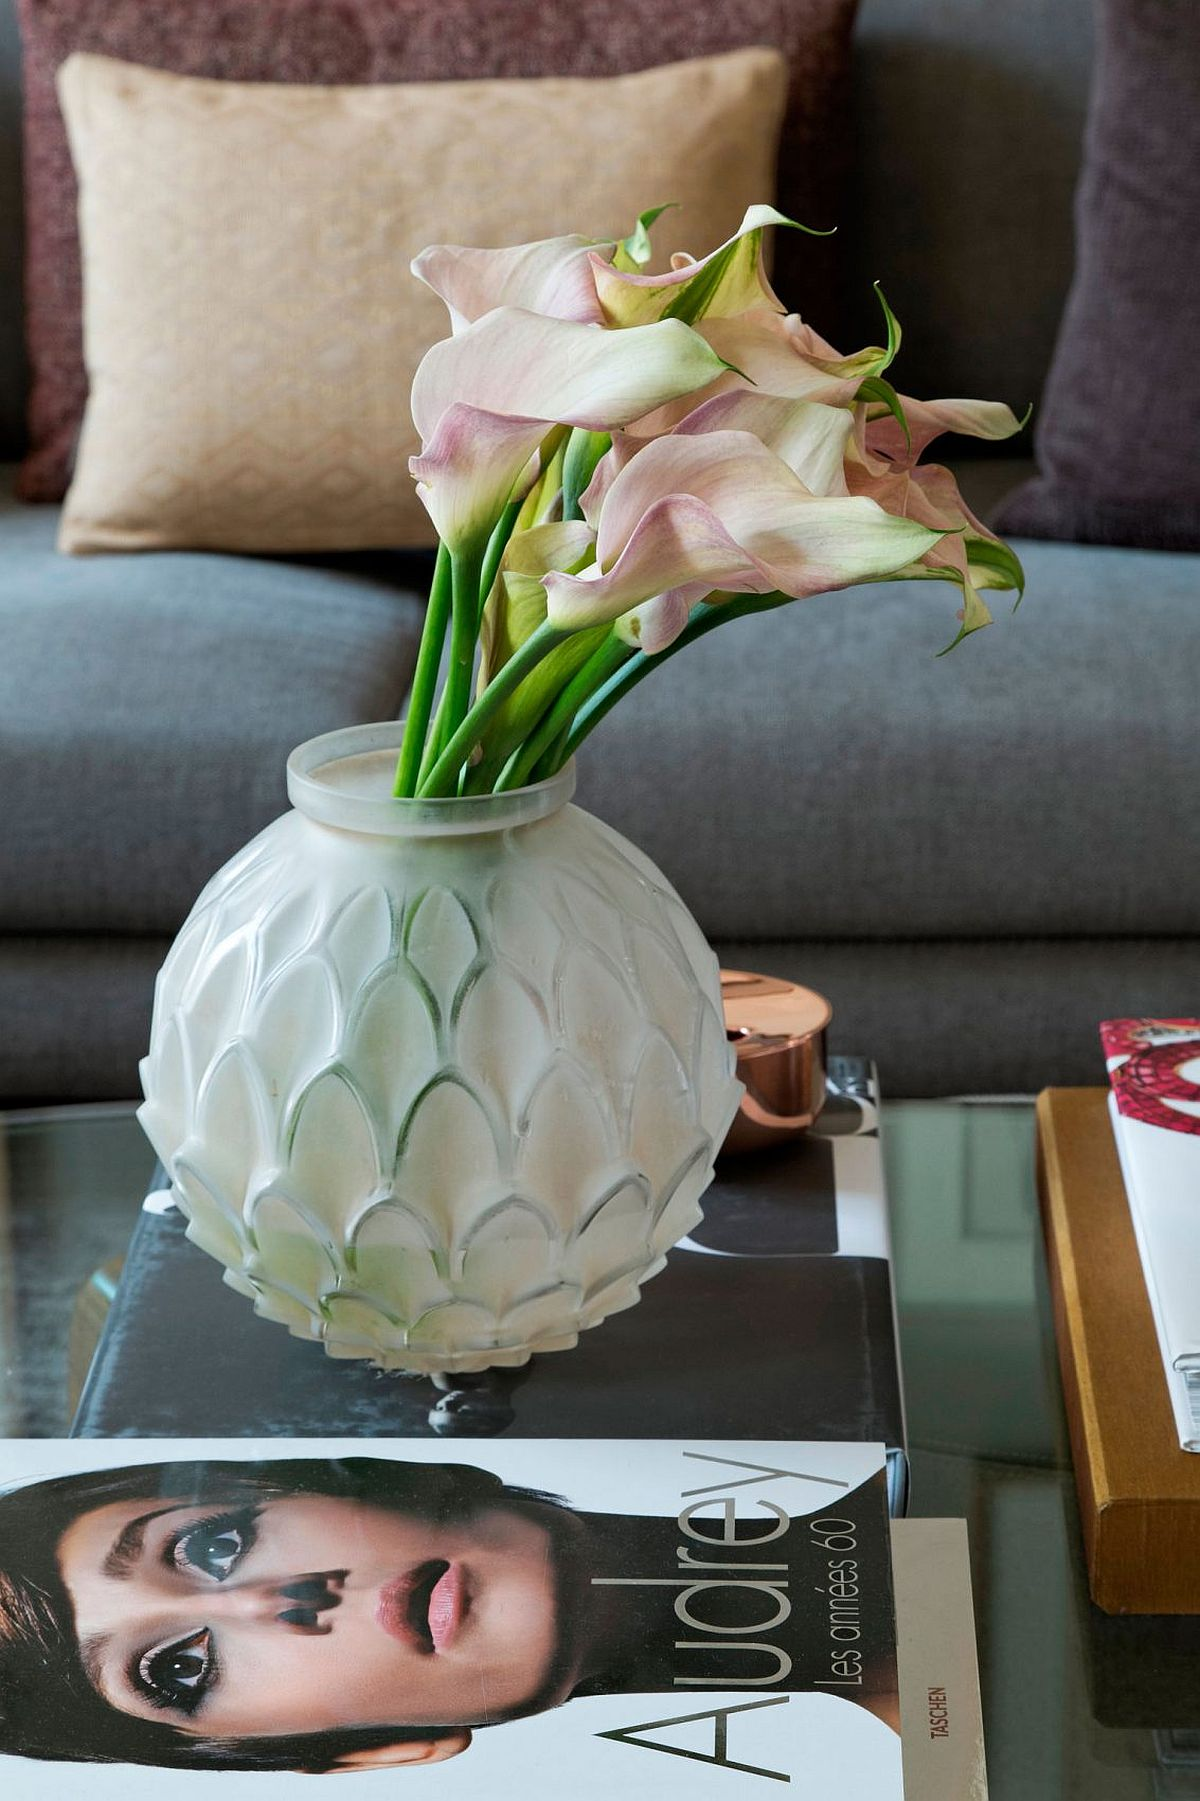 Chic decorating ideas that help bring home the Parisian vibe